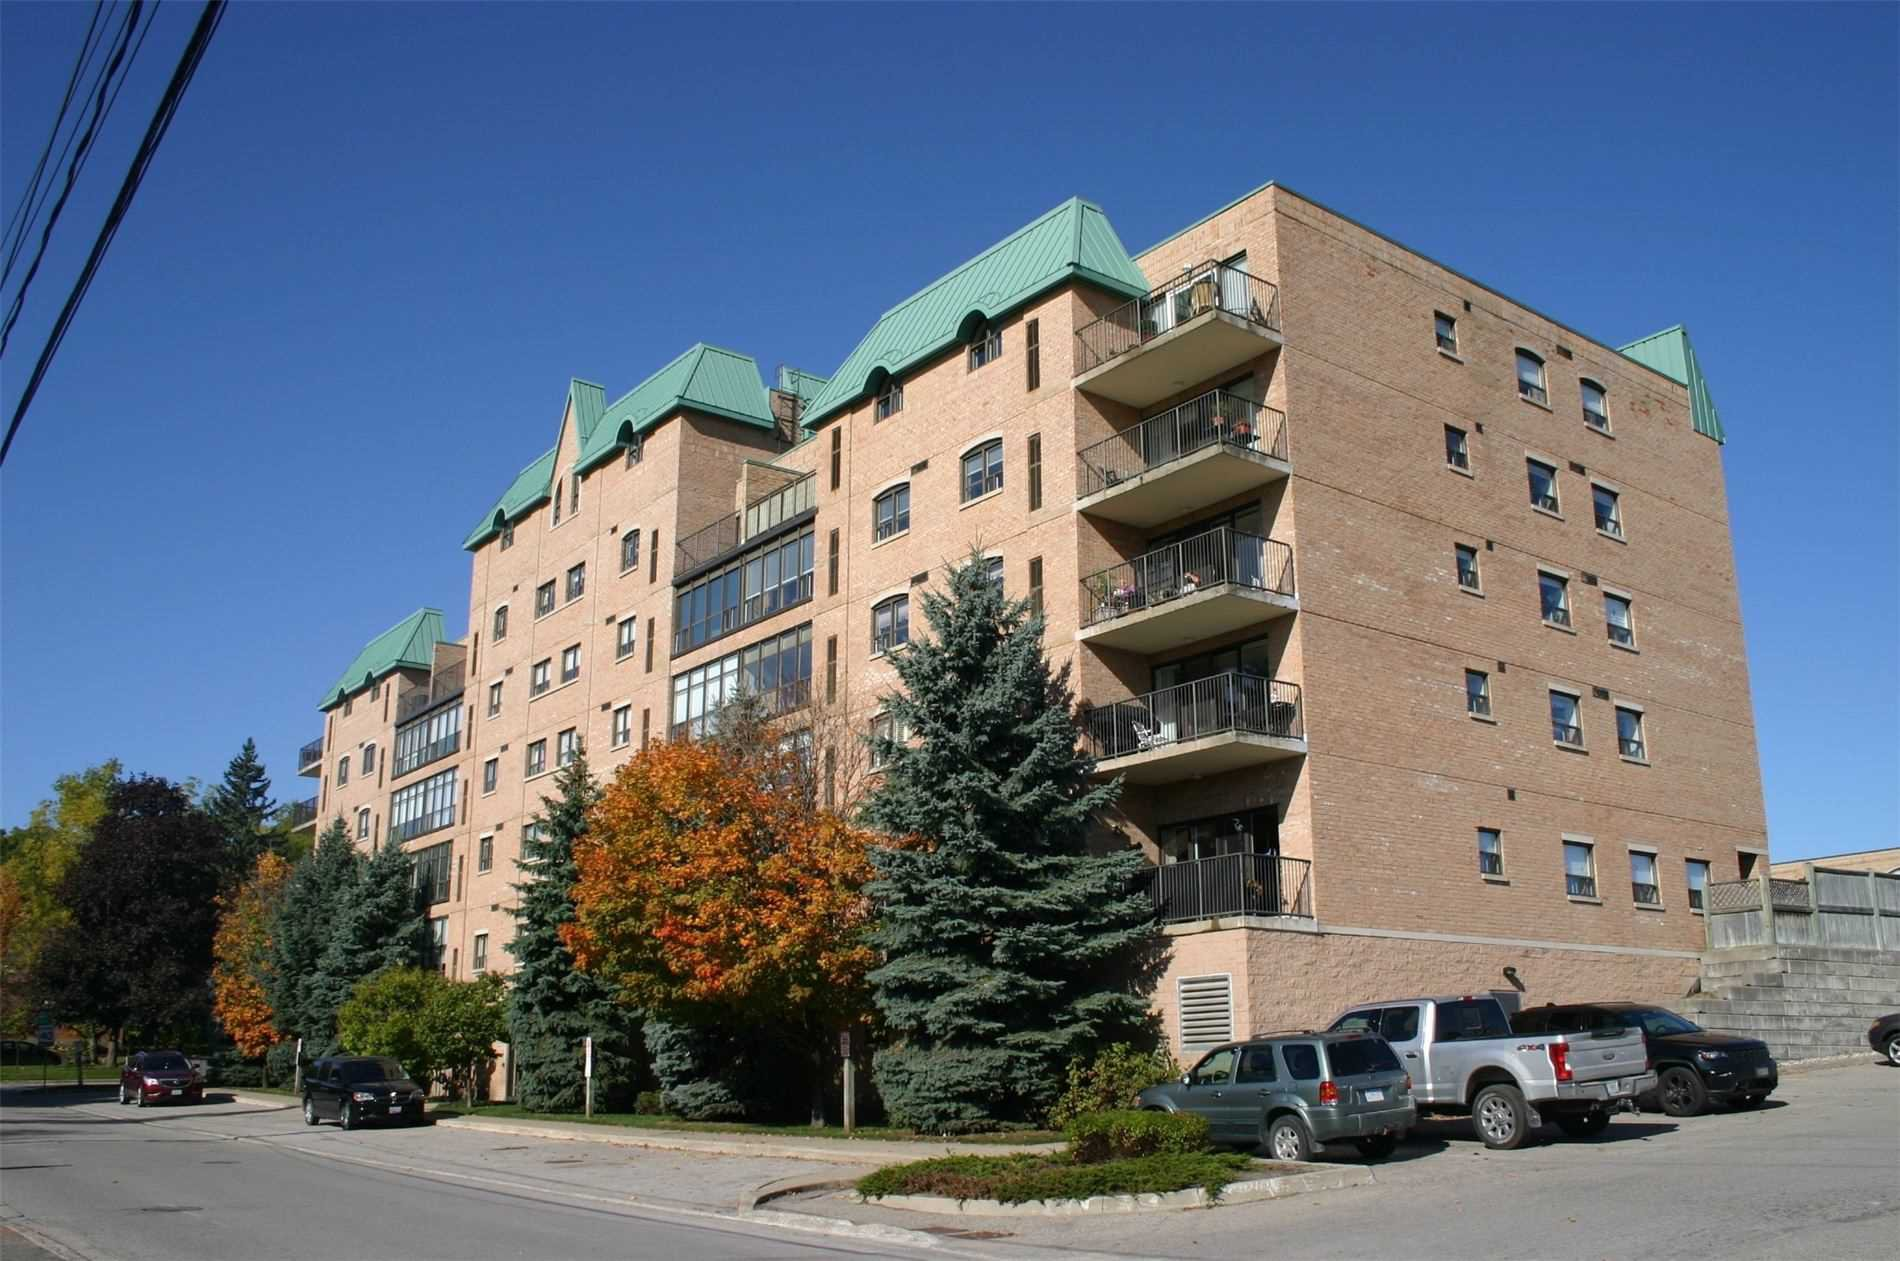 Main Photo: 610 200 Broadway: Orangeville Condo for sale : MLS®# W4648513